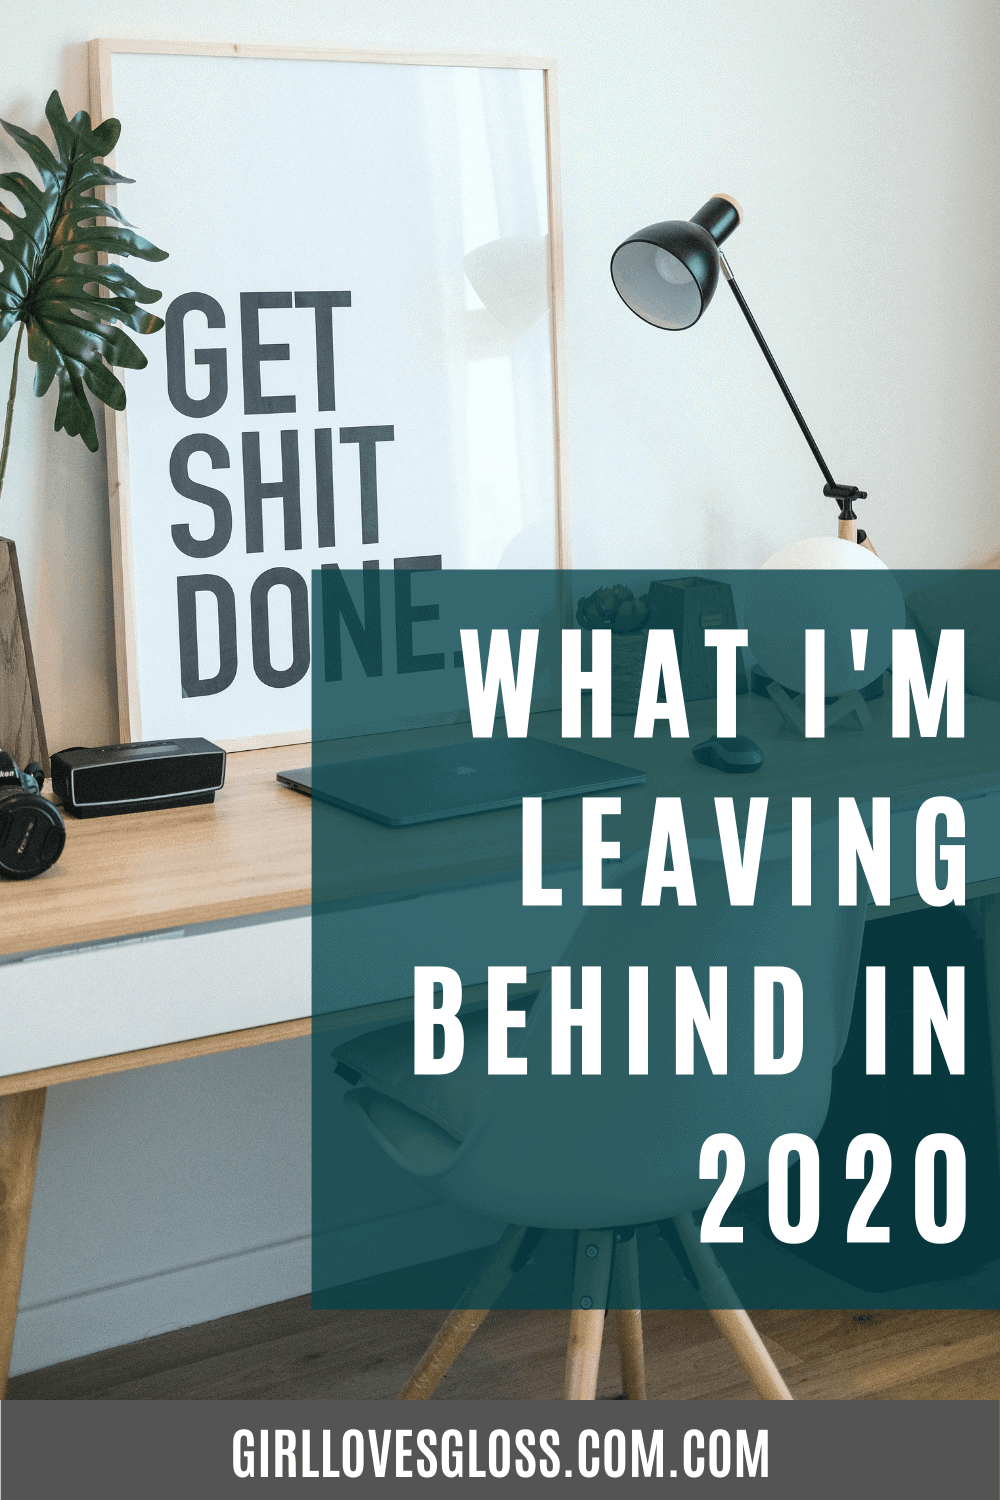 Things to Let Go of in 2021